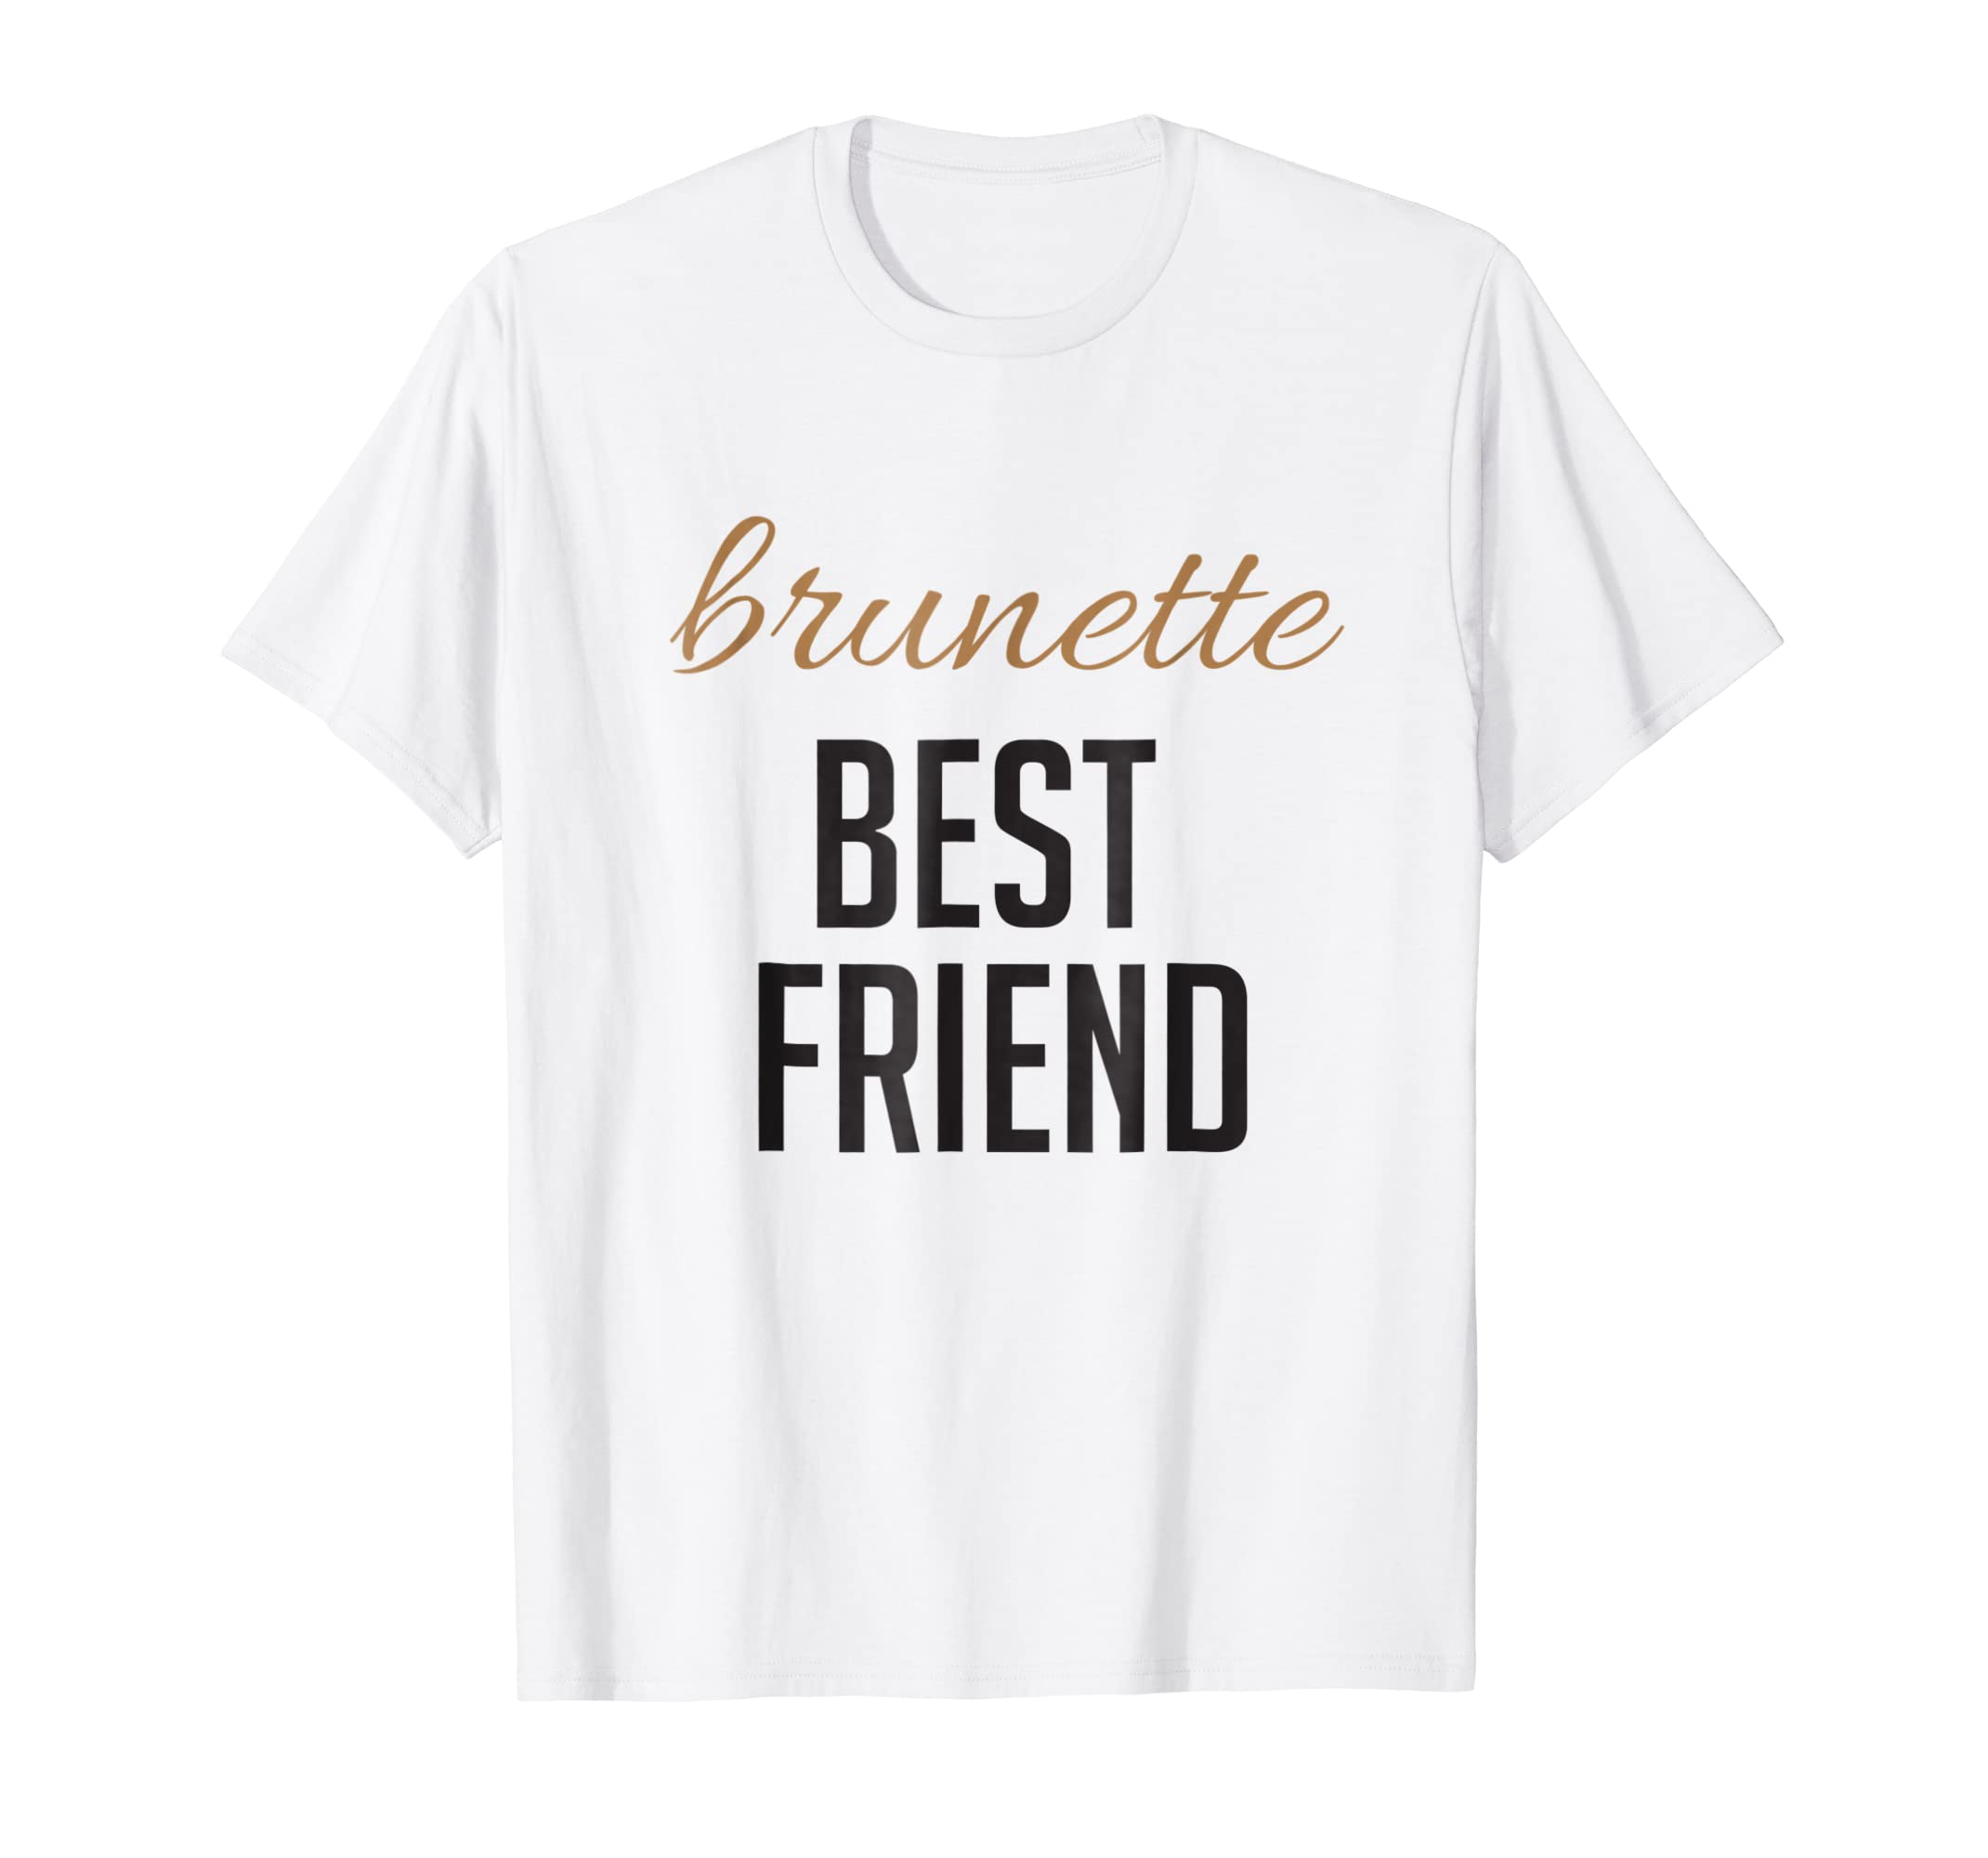 86848a91e Matching Shirts For Best Friends Amazon – EDGE Engineering and ...